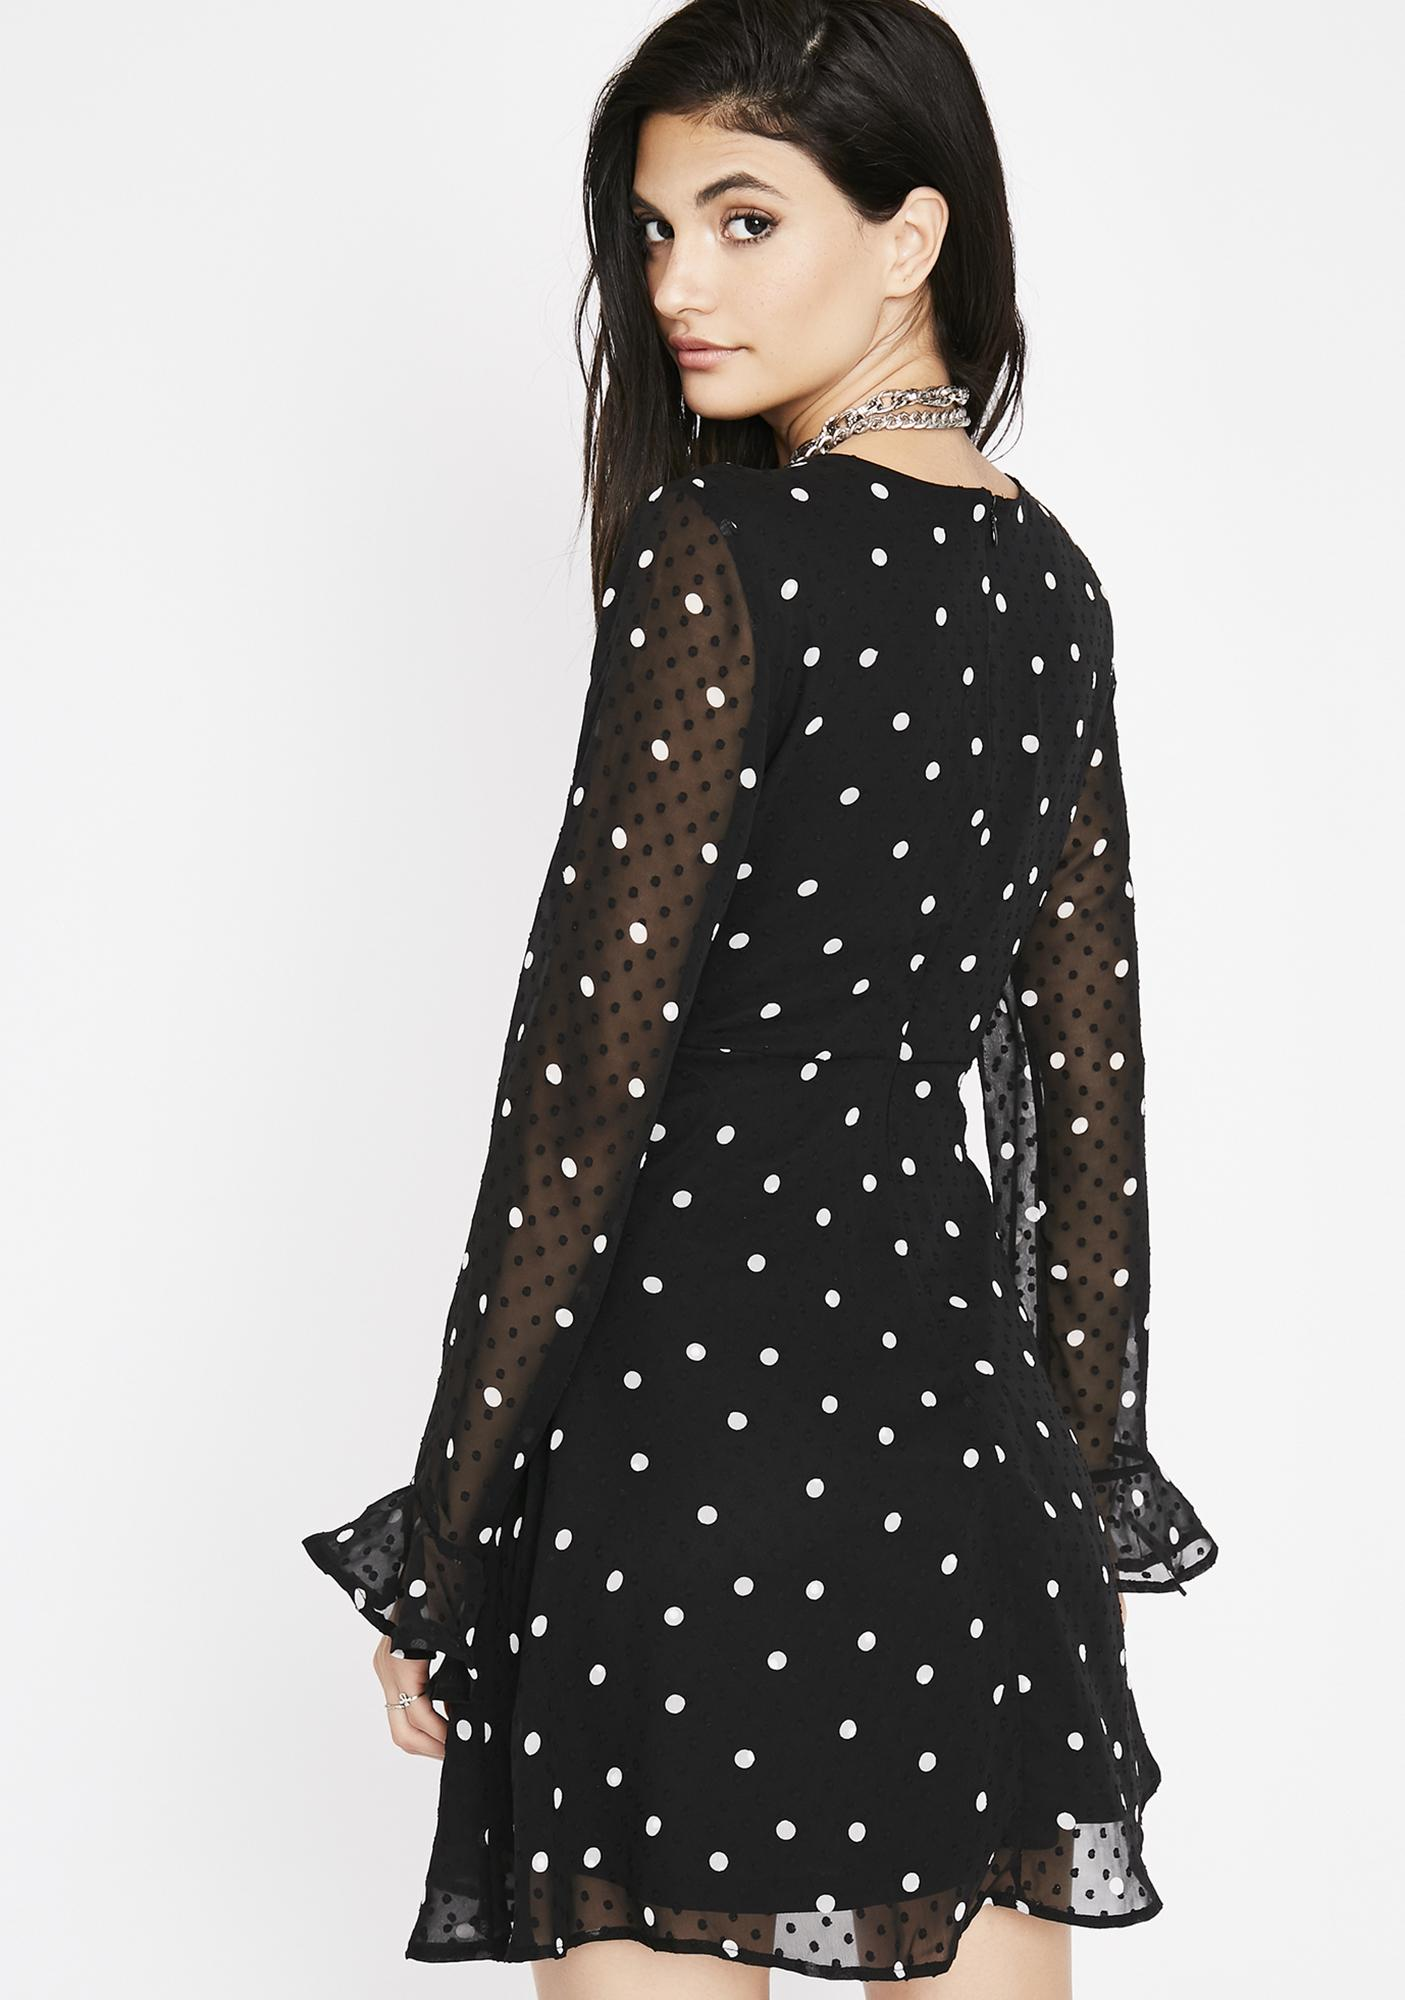 Center Stage Polka Dot Dress